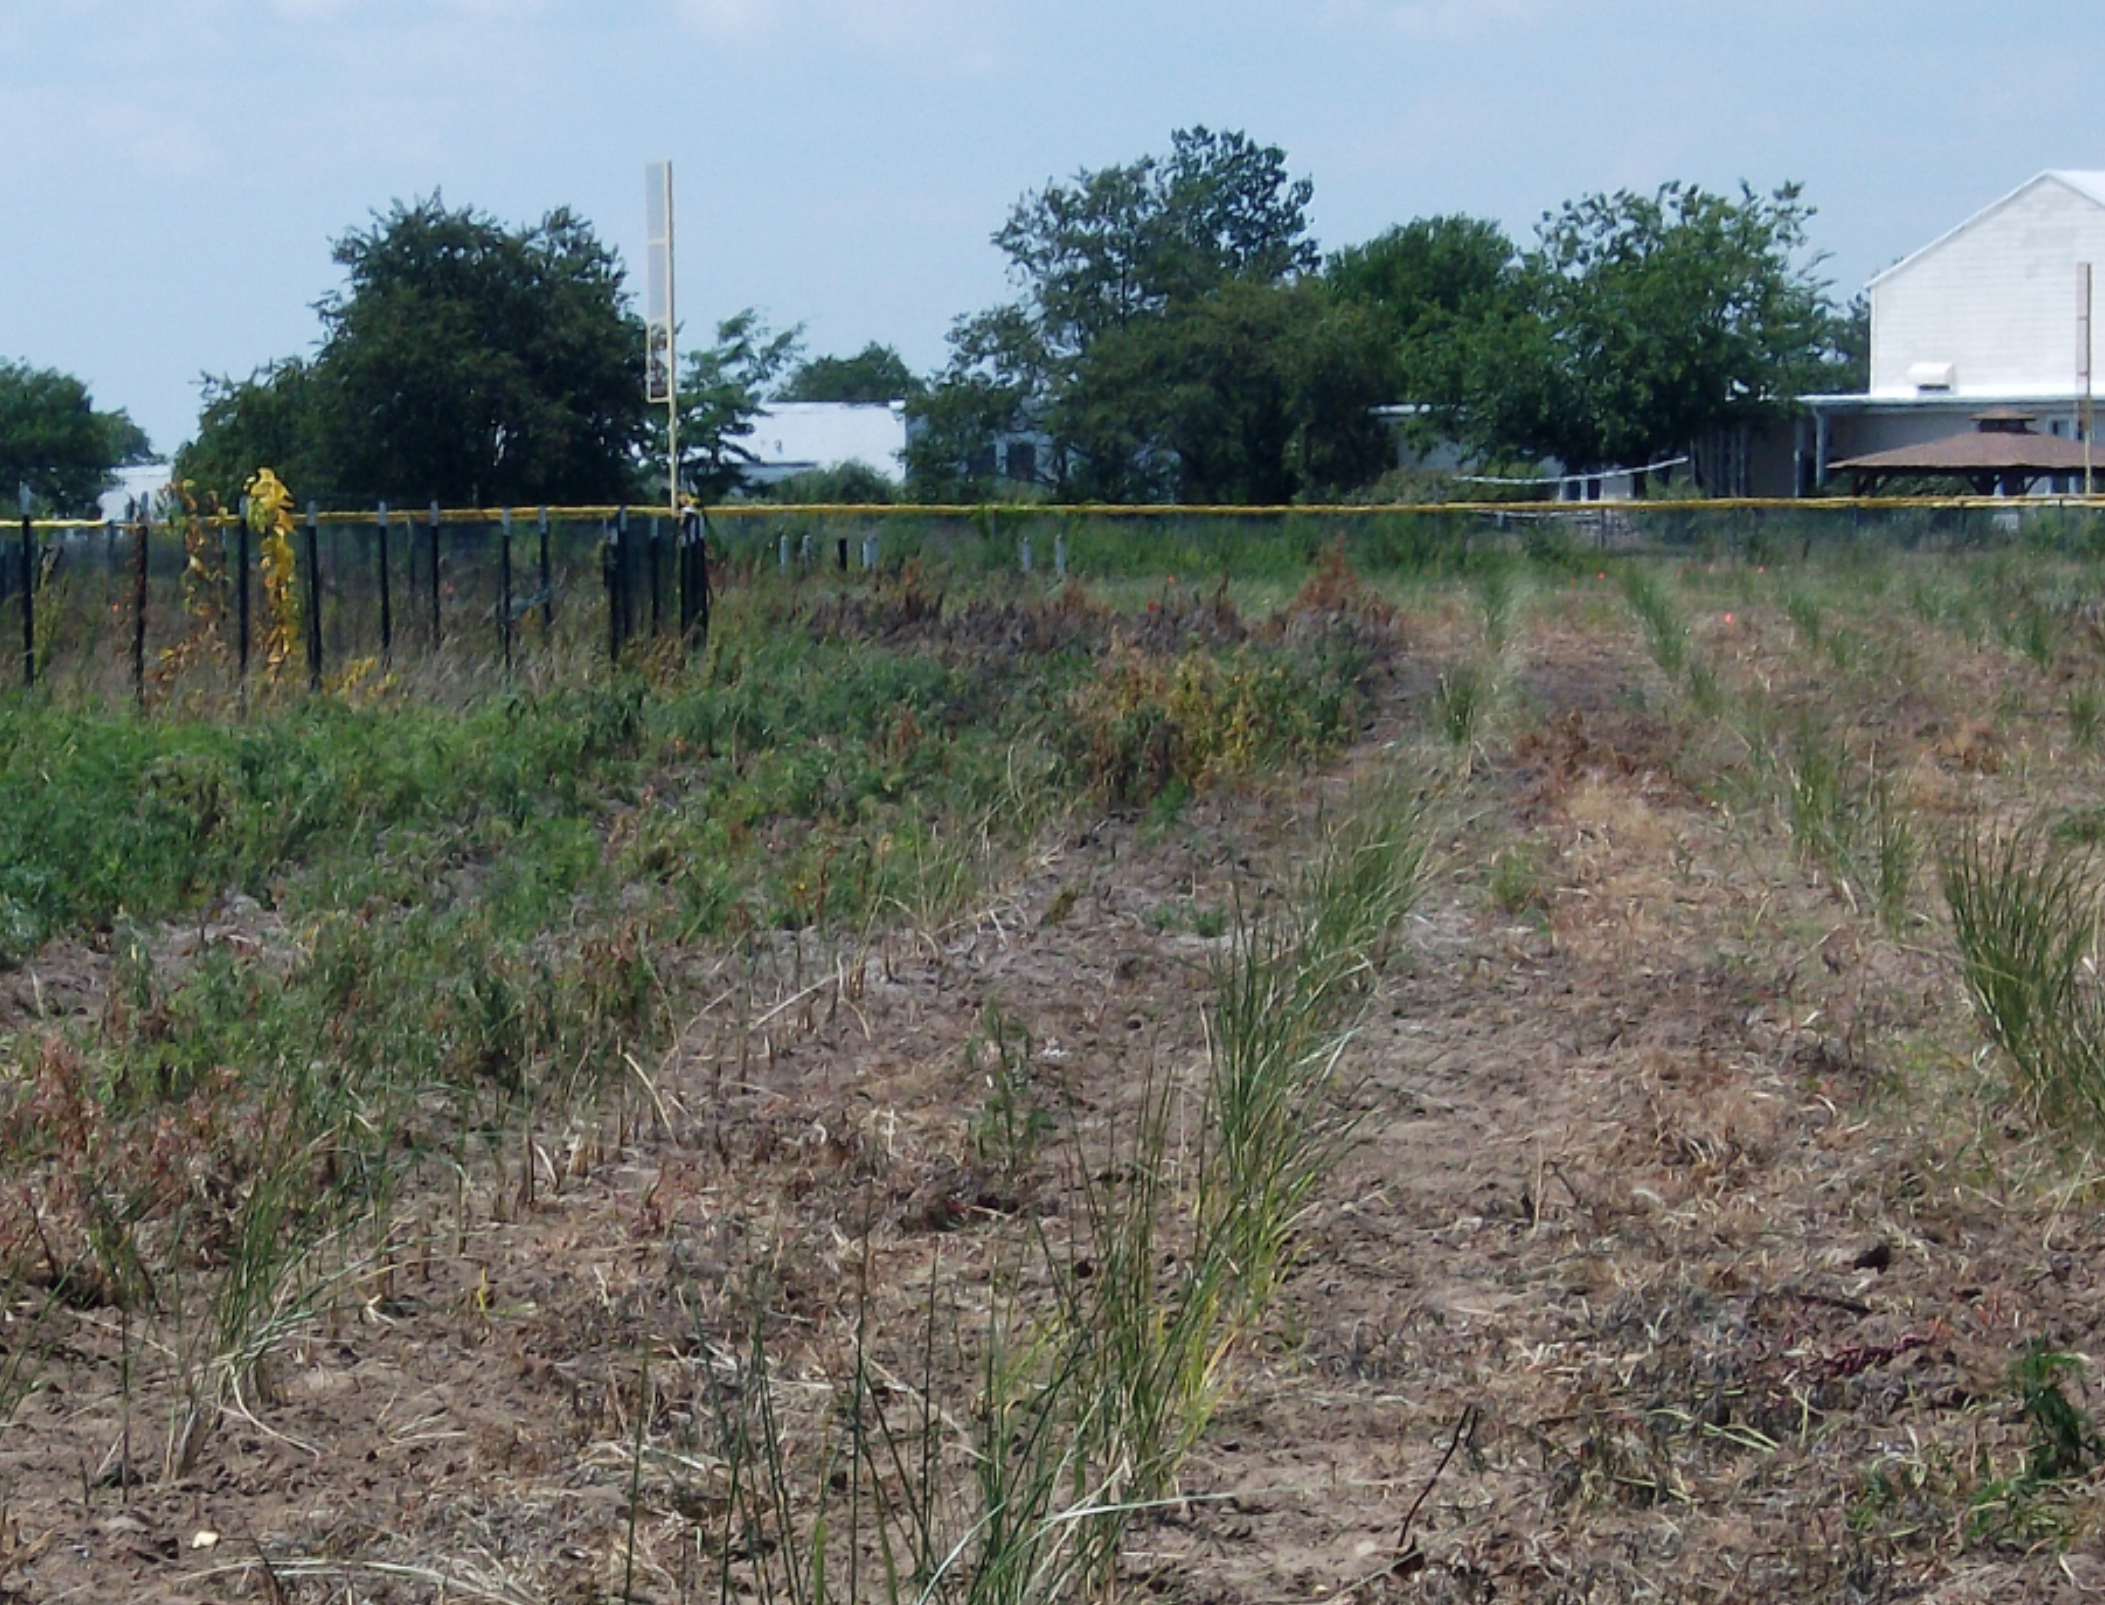 Rows of beach grass that were planted at the Floyd Bennett Field nursery will be harvested while dormant in the fall and winter.